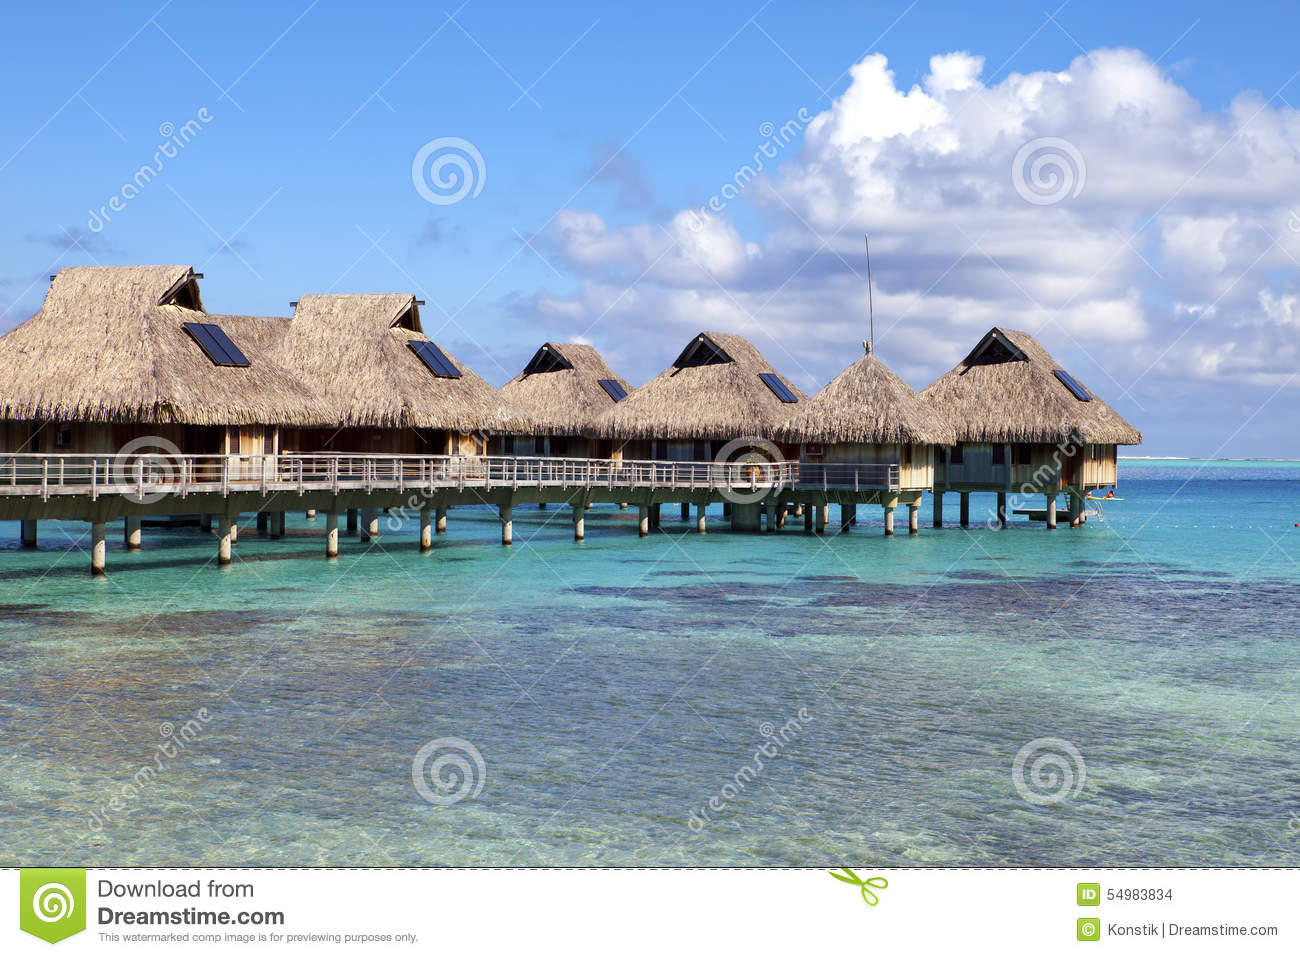 Delightful Typical Landscape Of Tropical Islands   Huts, Wooden Houses Over Water.  Maldives, Coral.